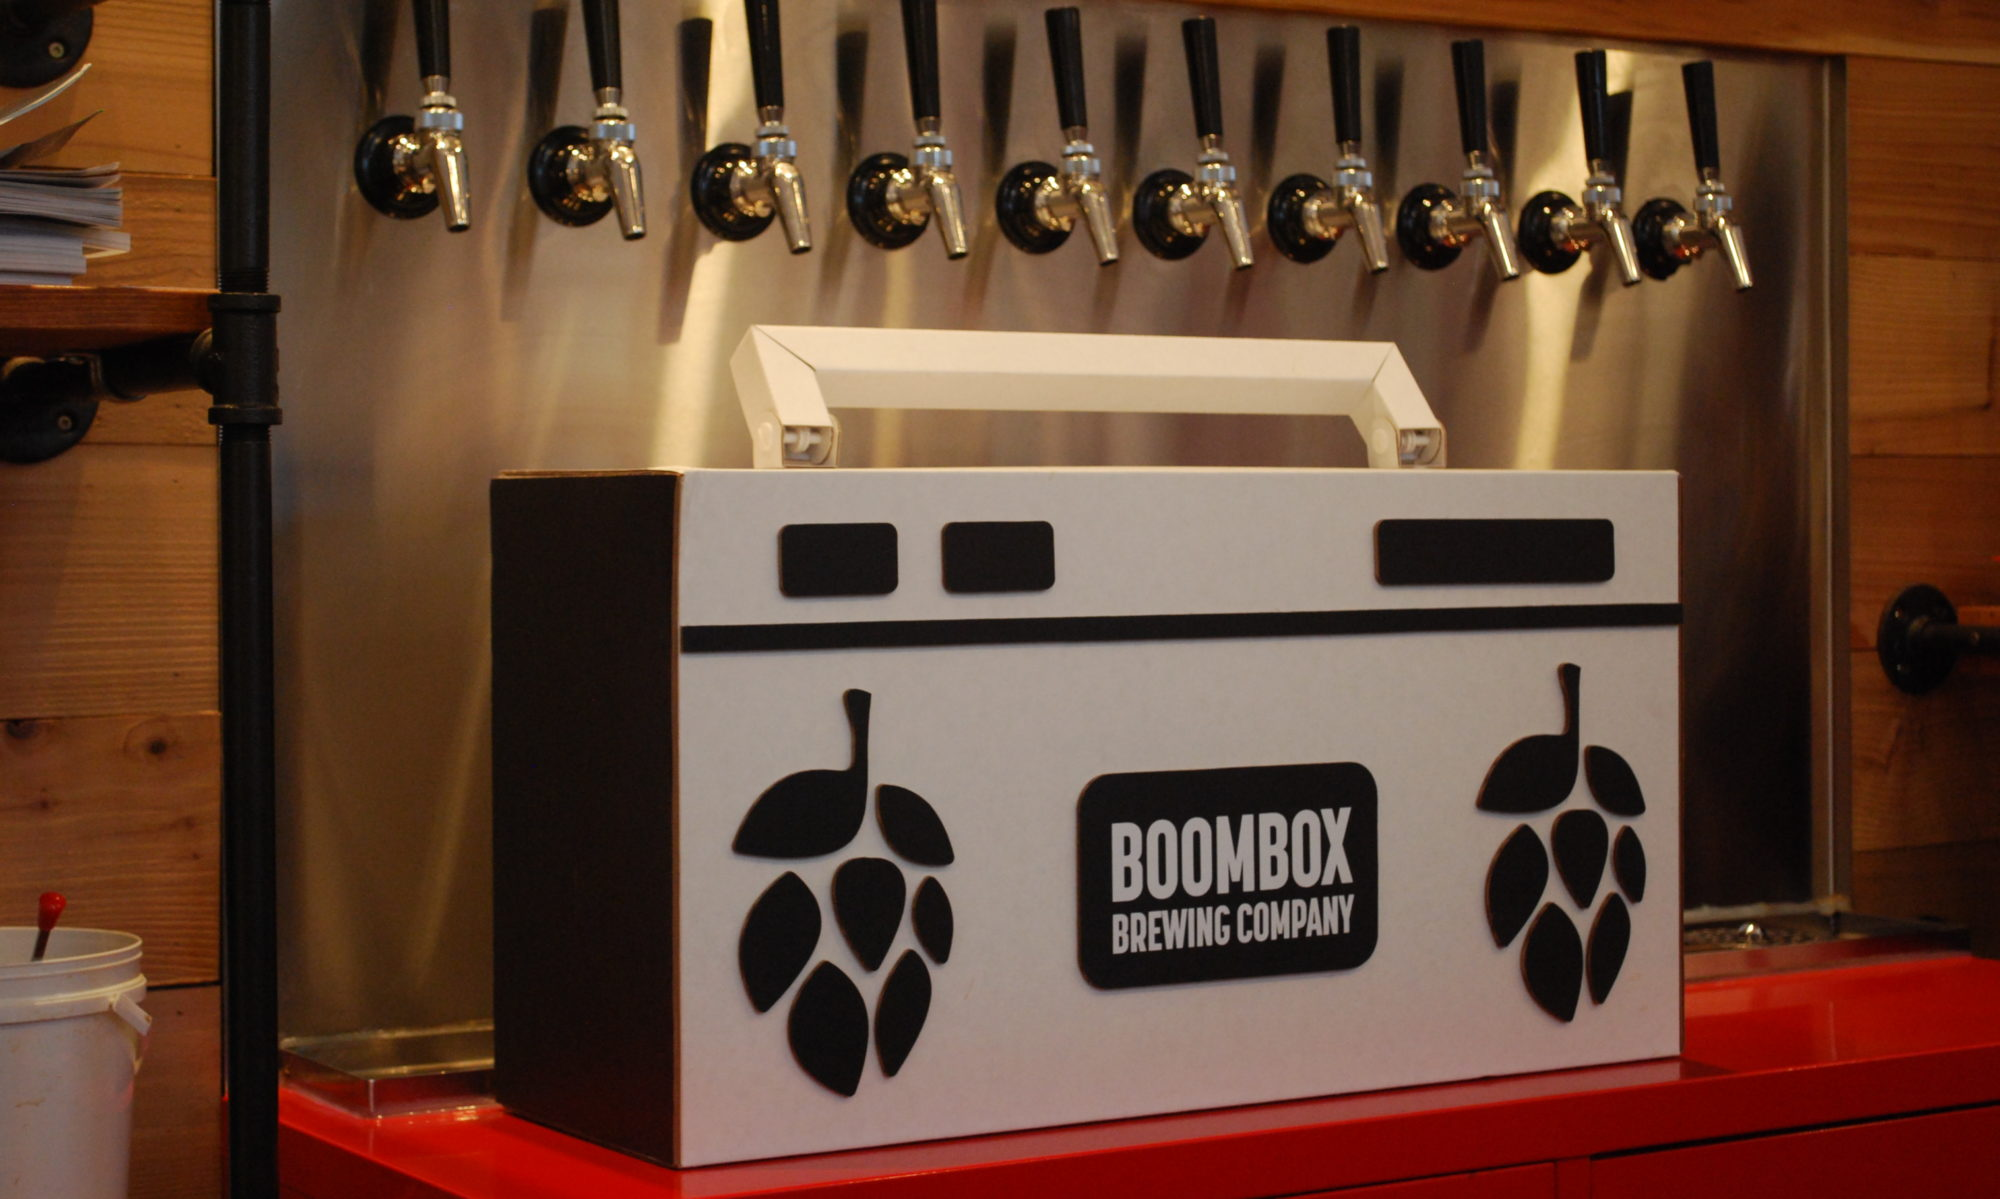 Boombox Brewing Company